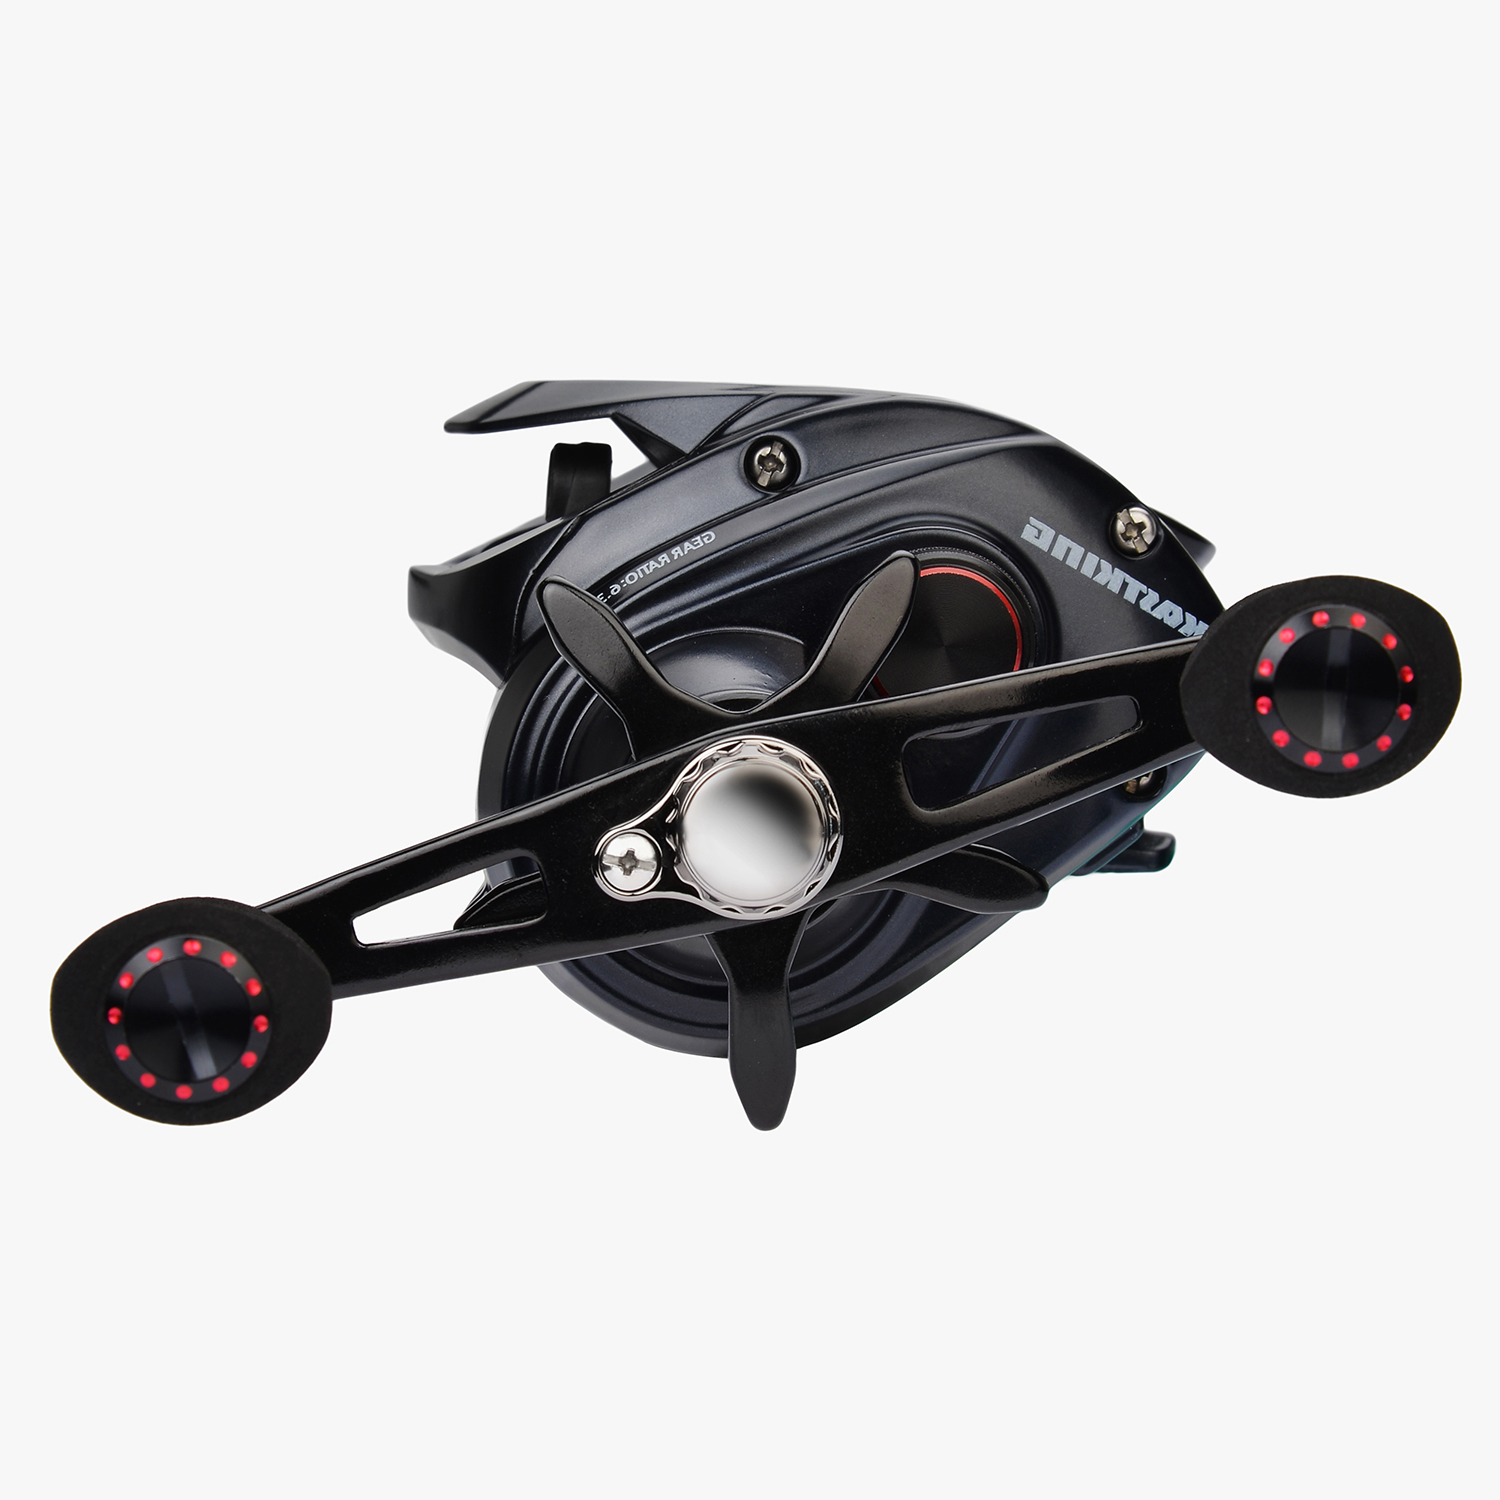 KastKing Spartacus Maximus Metal Baitcasting Fishing Reel